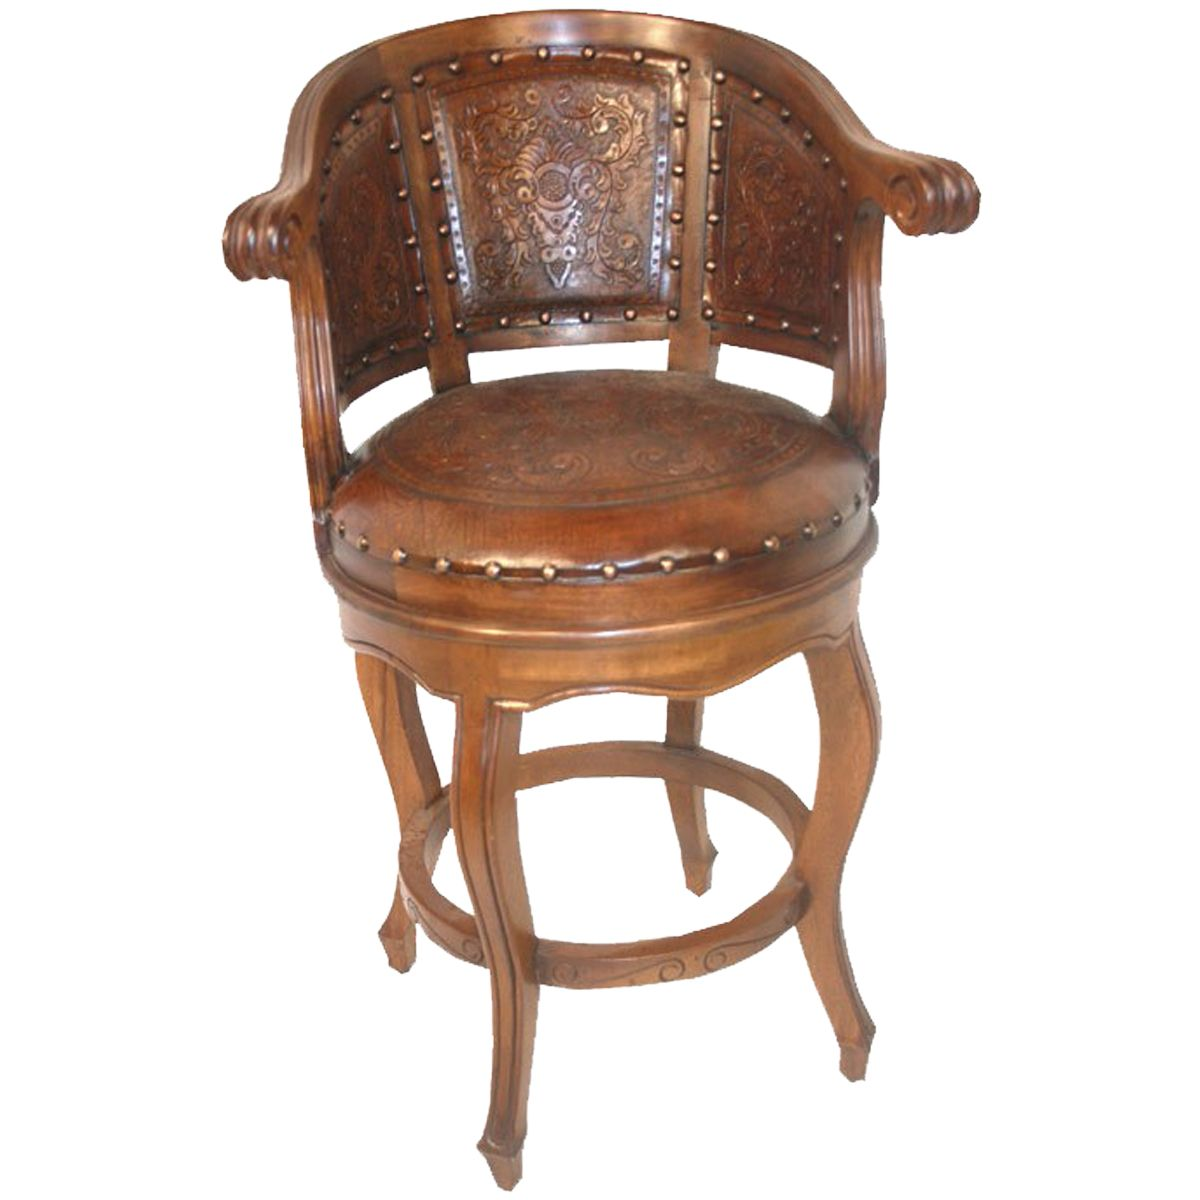 Cardenal Swivel Barstool with Back - Rustic